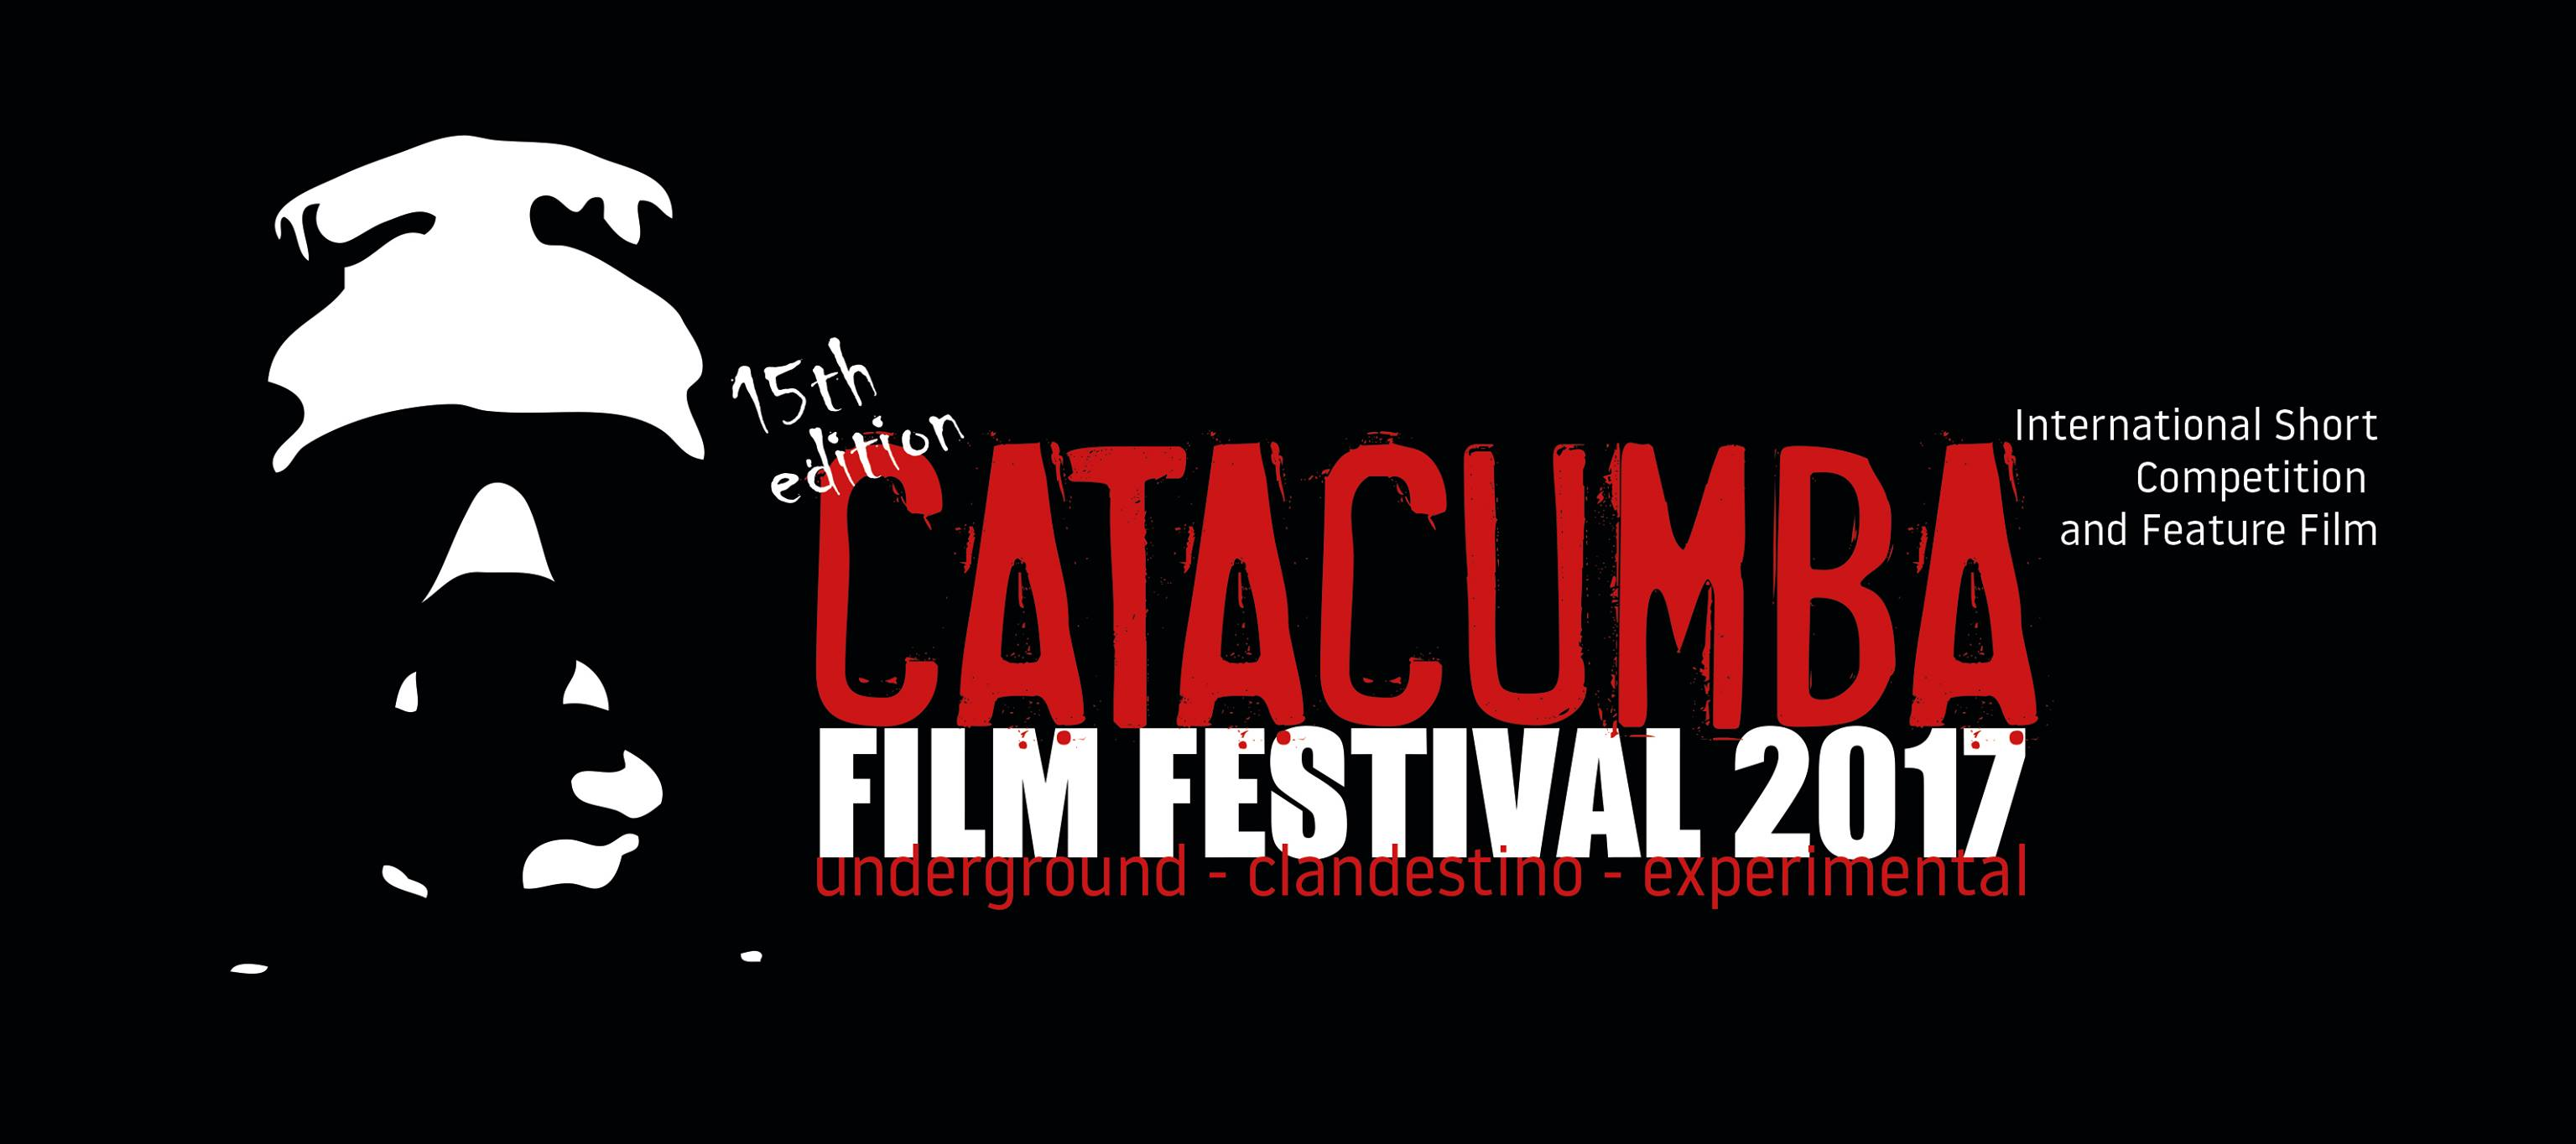 Catacumba